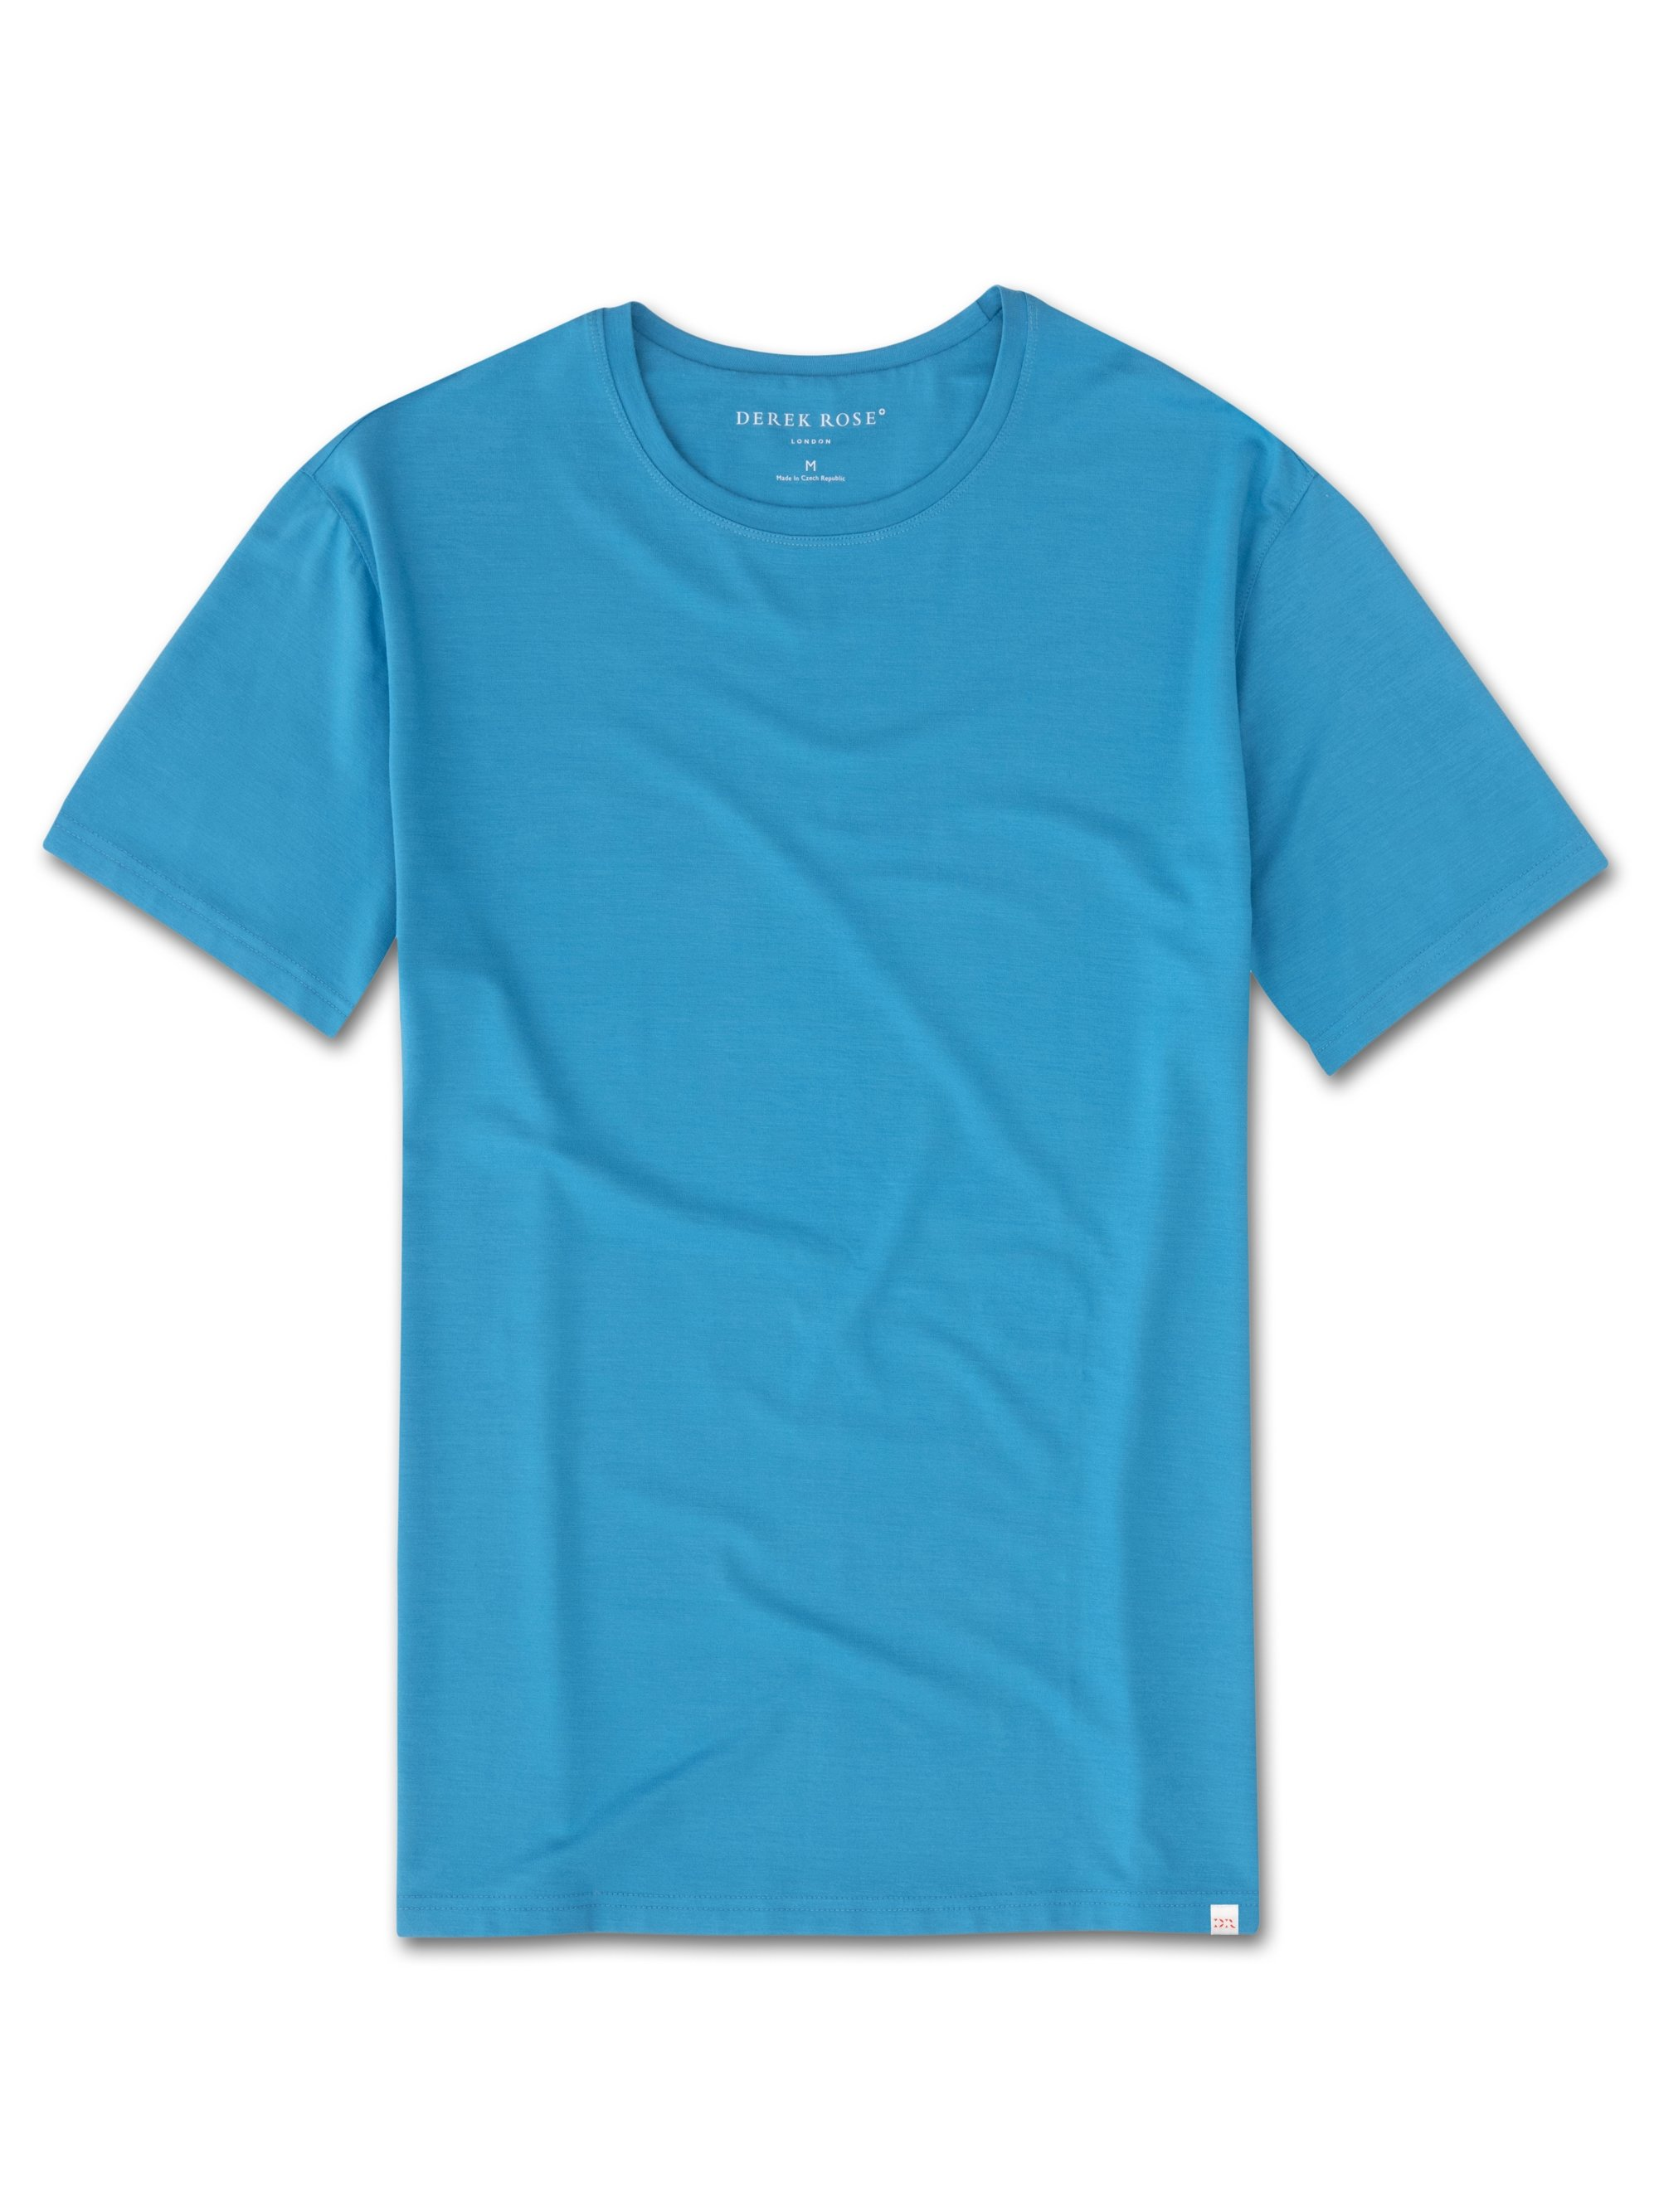 Men's Short Sleeve T-Shirt Basel 6 Micro Modal Stretch Blue